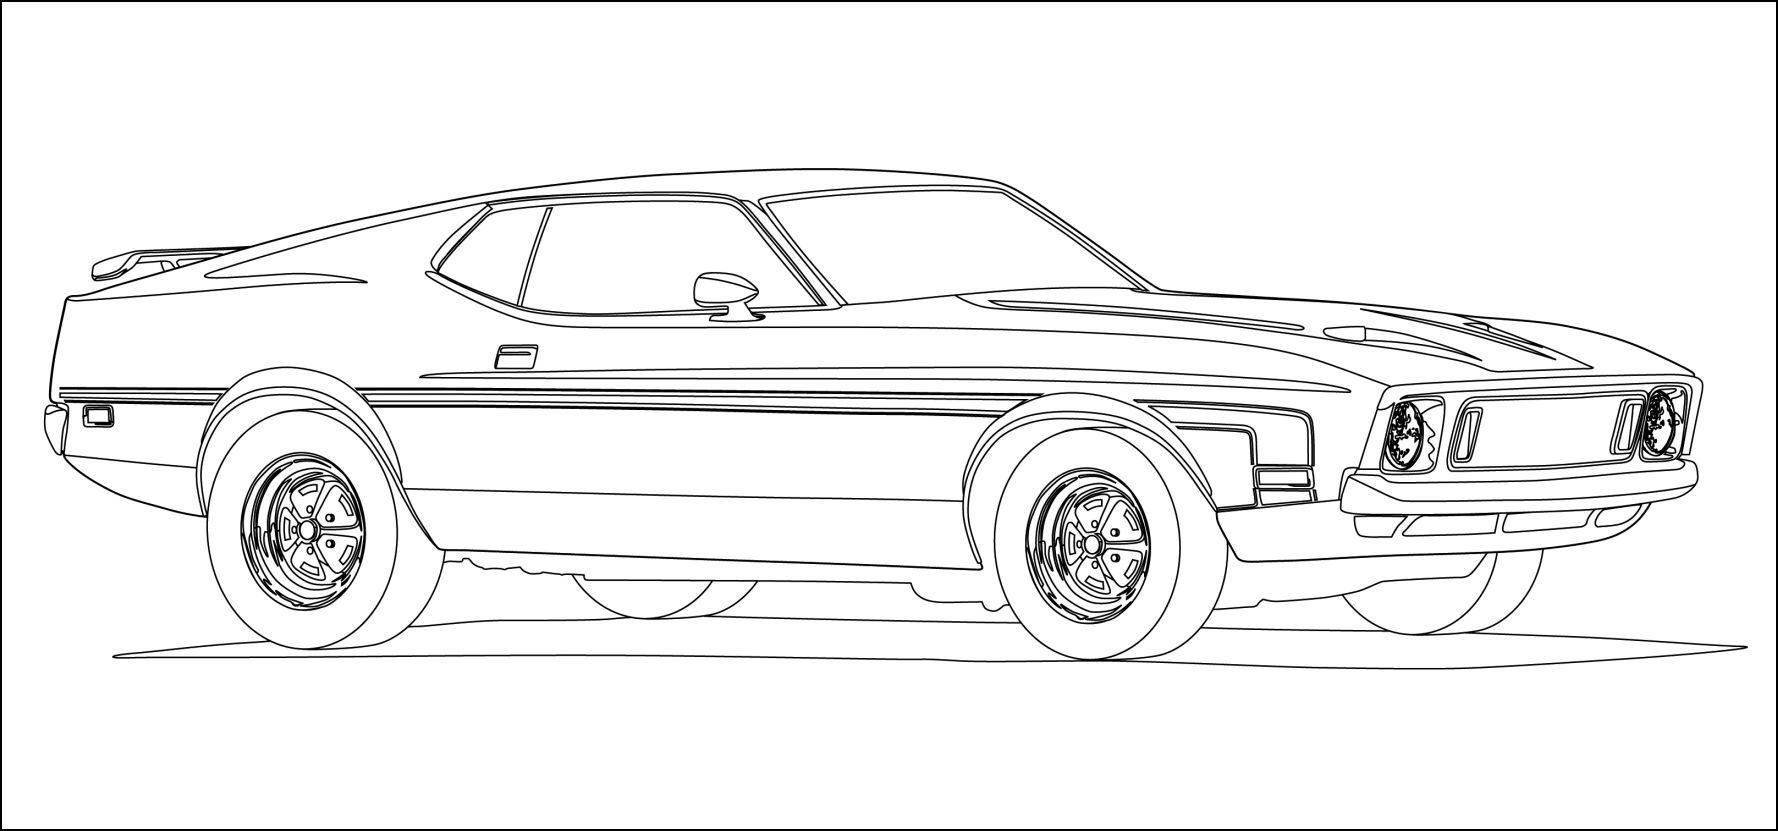 2011 Ford Mustang Coloring Pages Free Online Printable Sheets For Kids Get The Latest Images